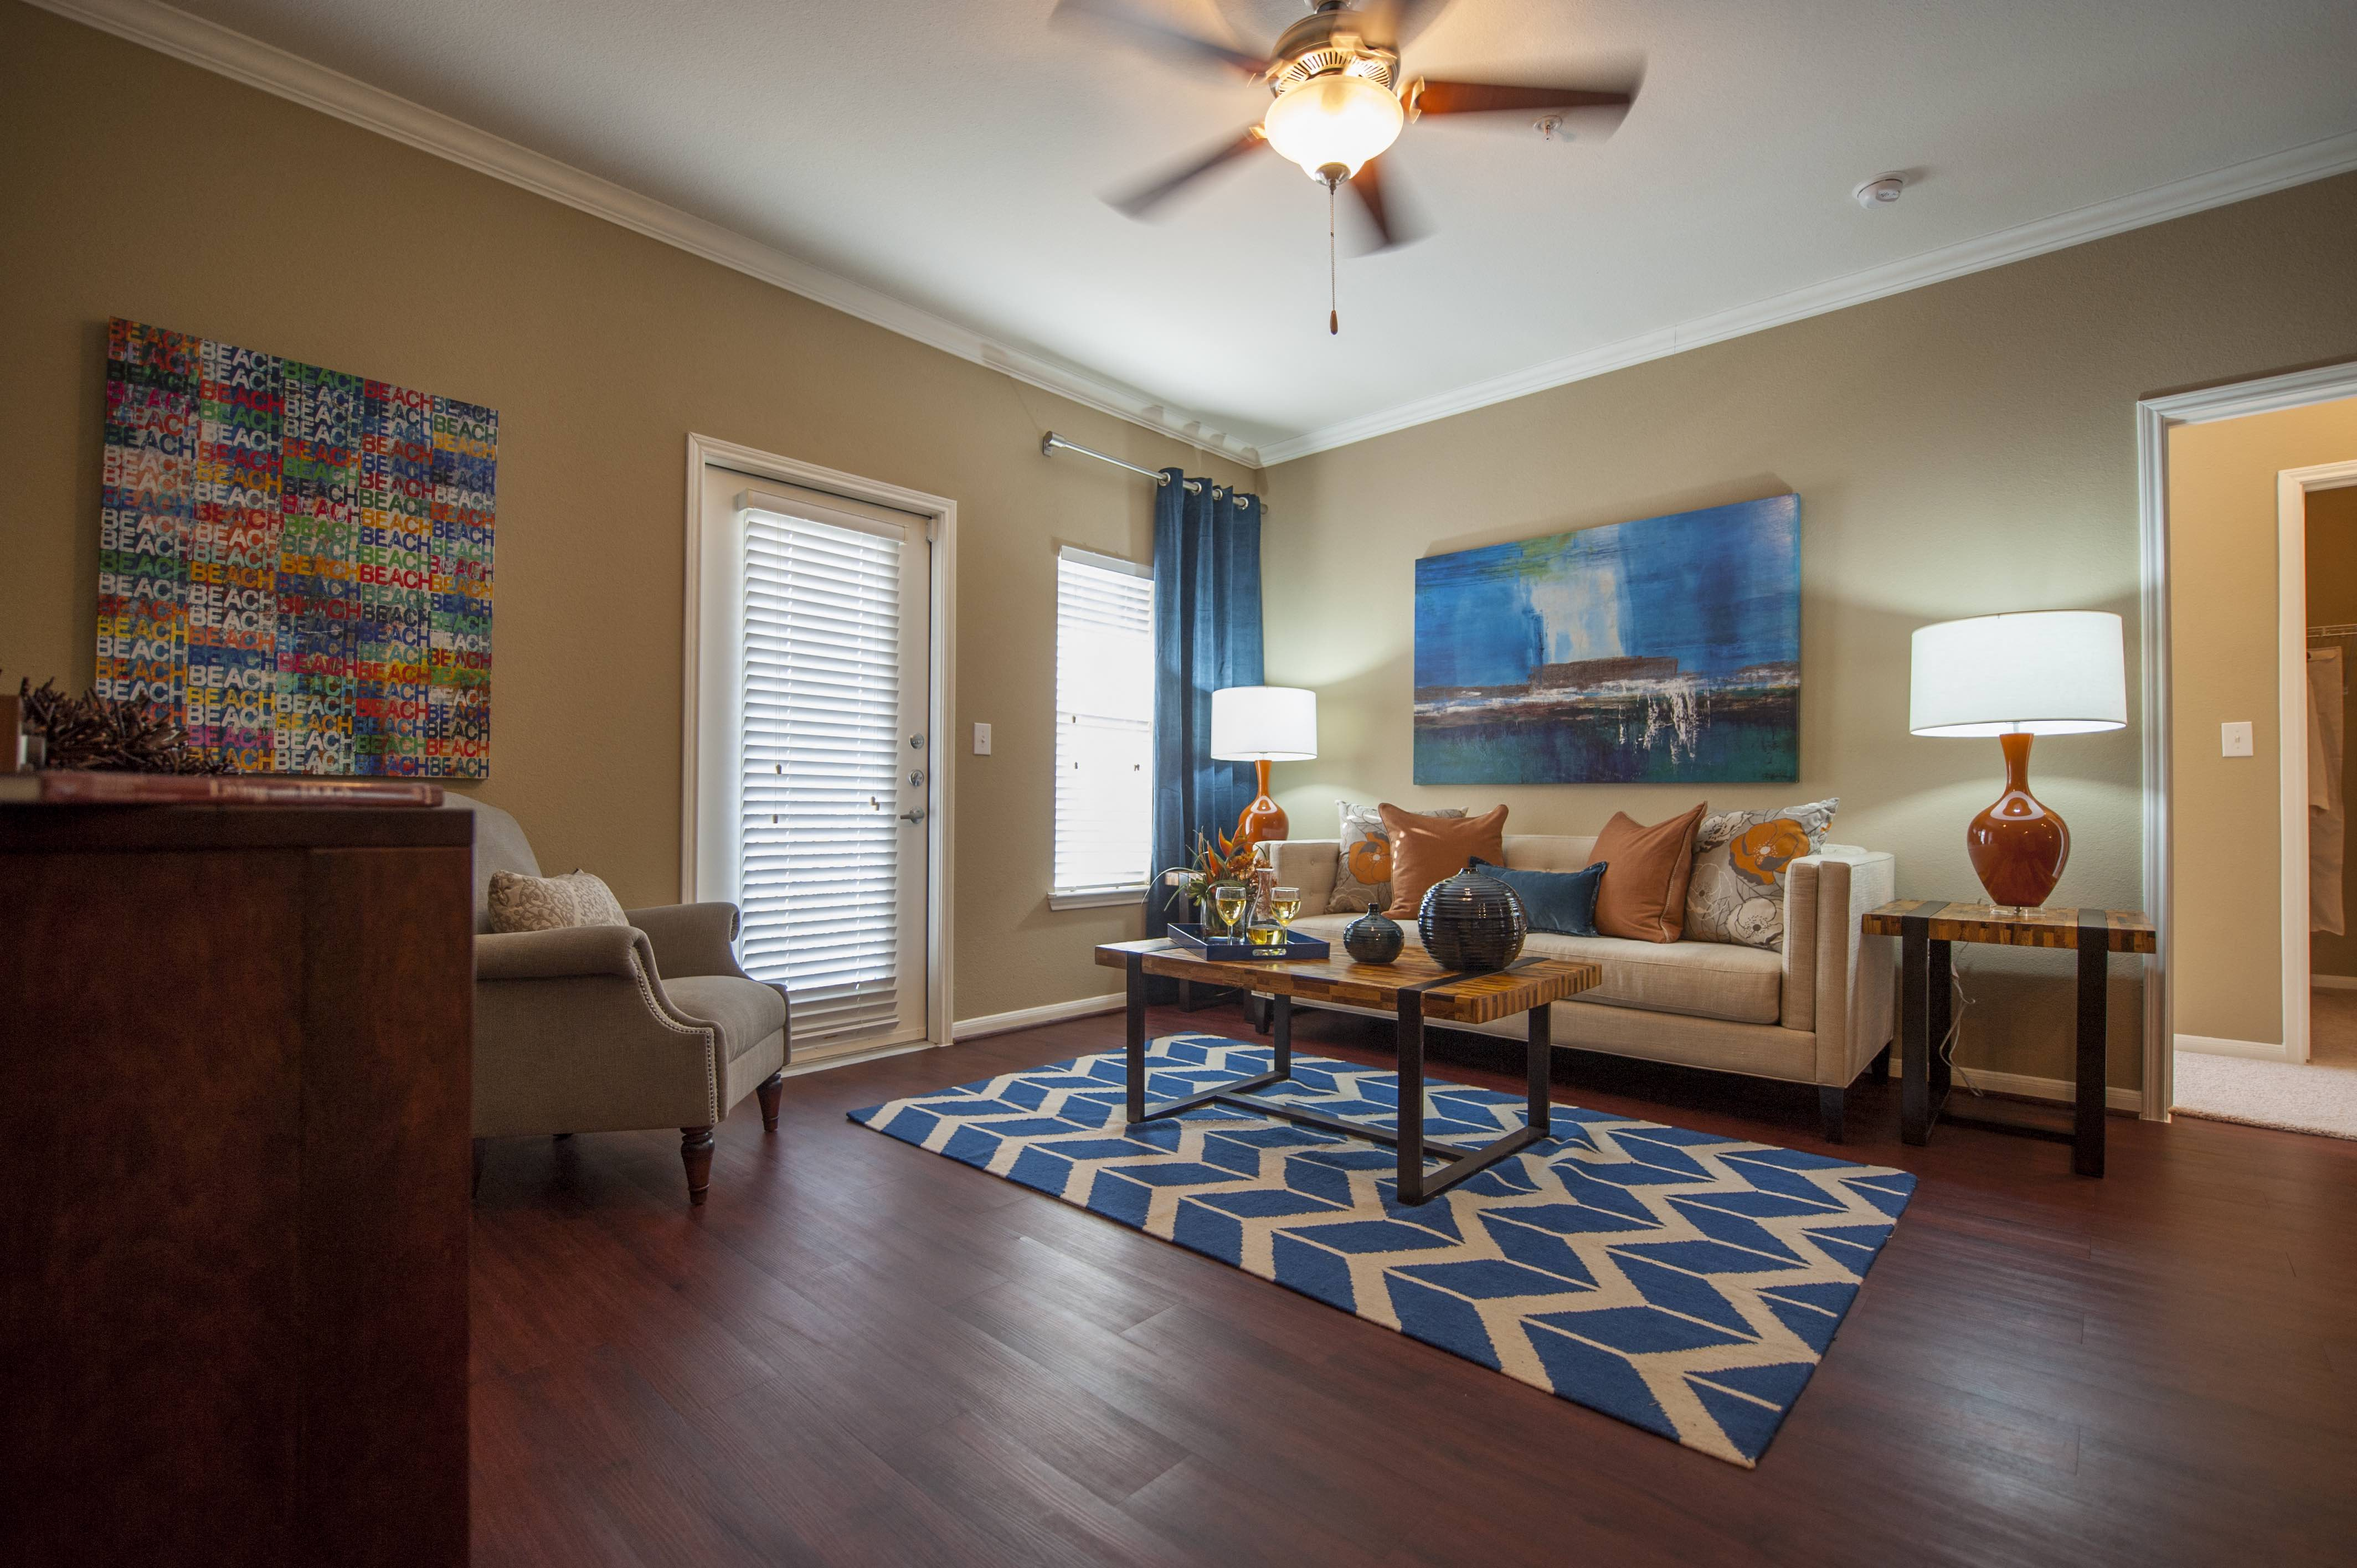 Ceiling Fan In Living Room at Century South Shore, Texas